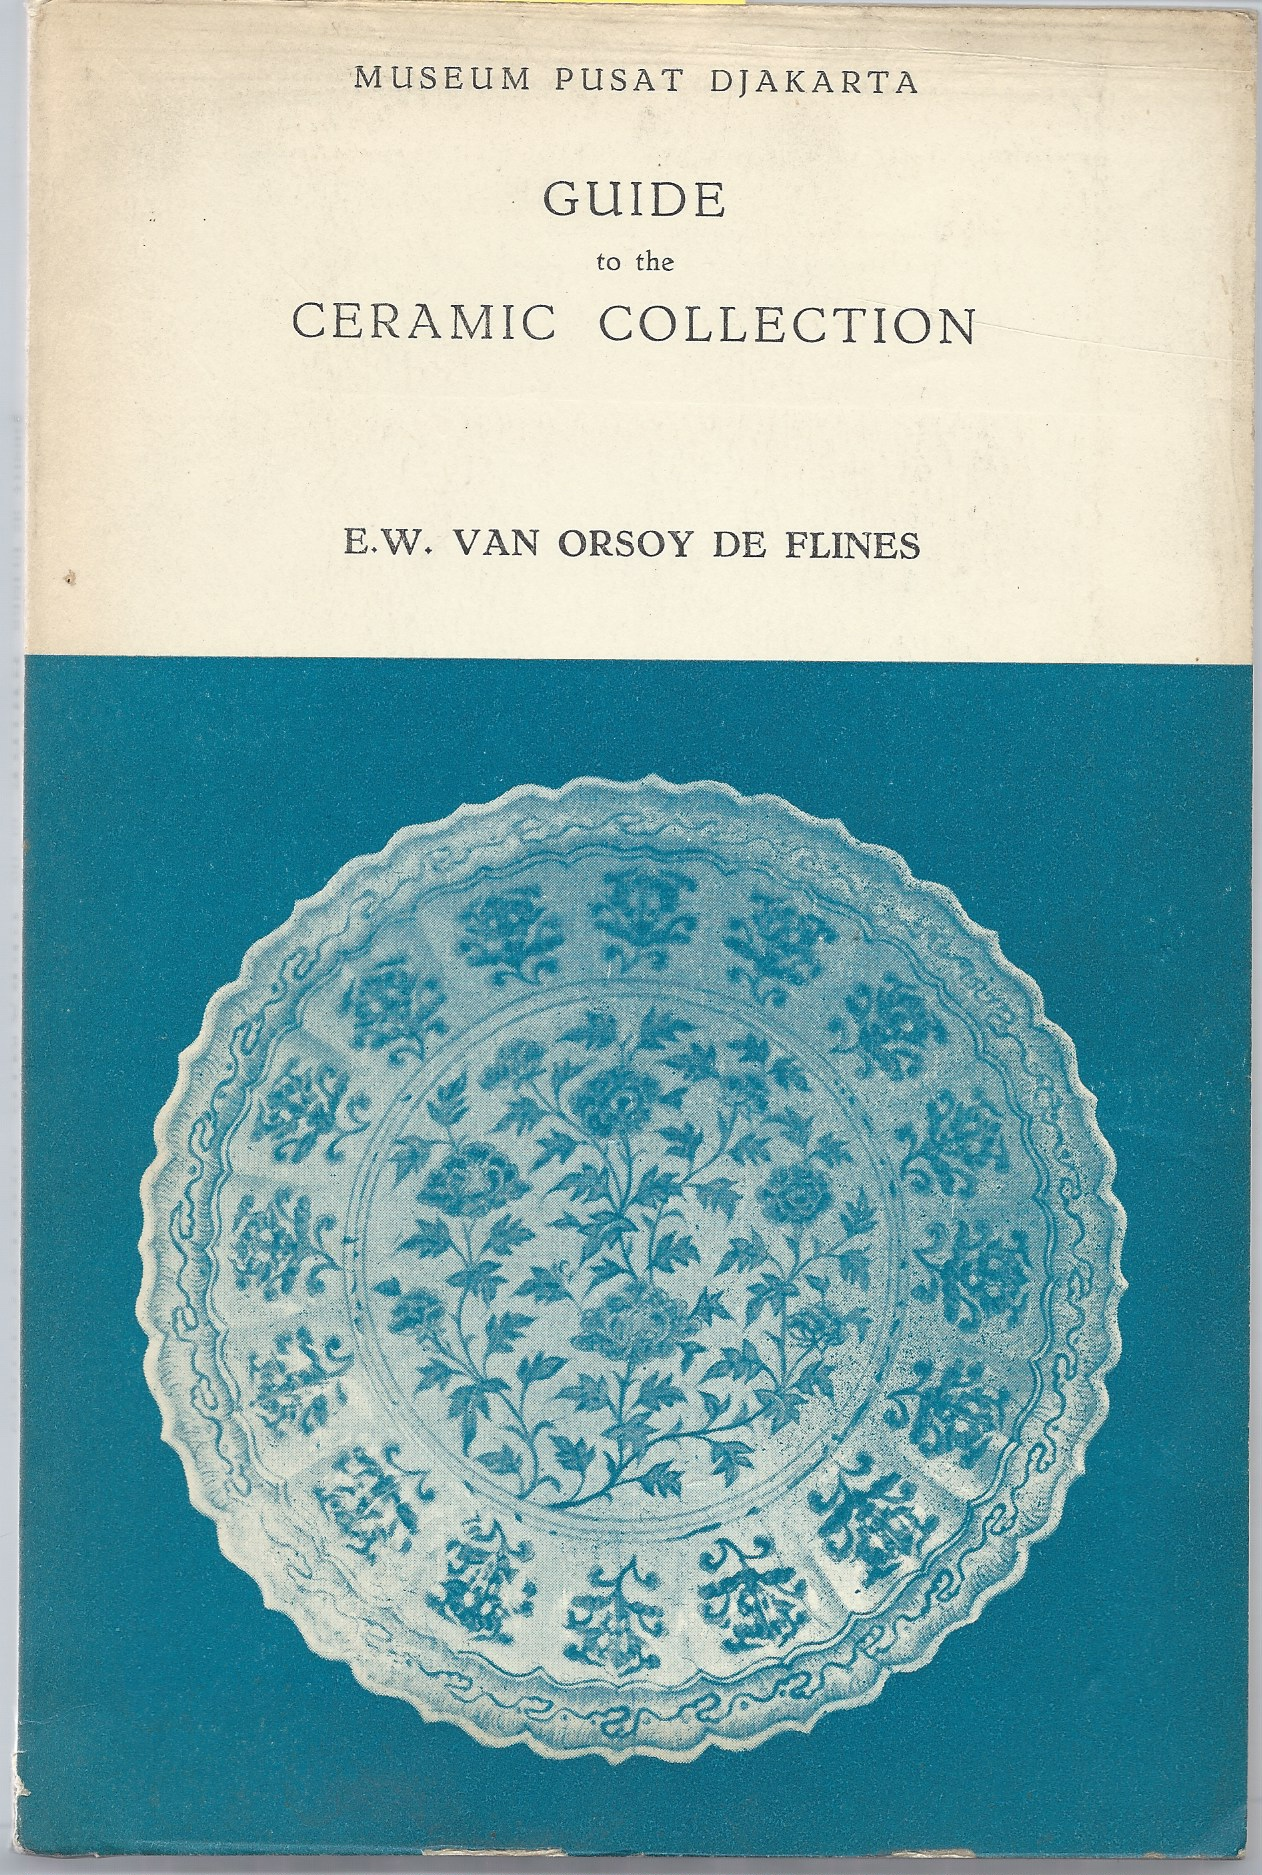 Image for GUIDE TO THE CERAMIC COLLECTION OF THE MUSEUM PUSAT DAJKARTA